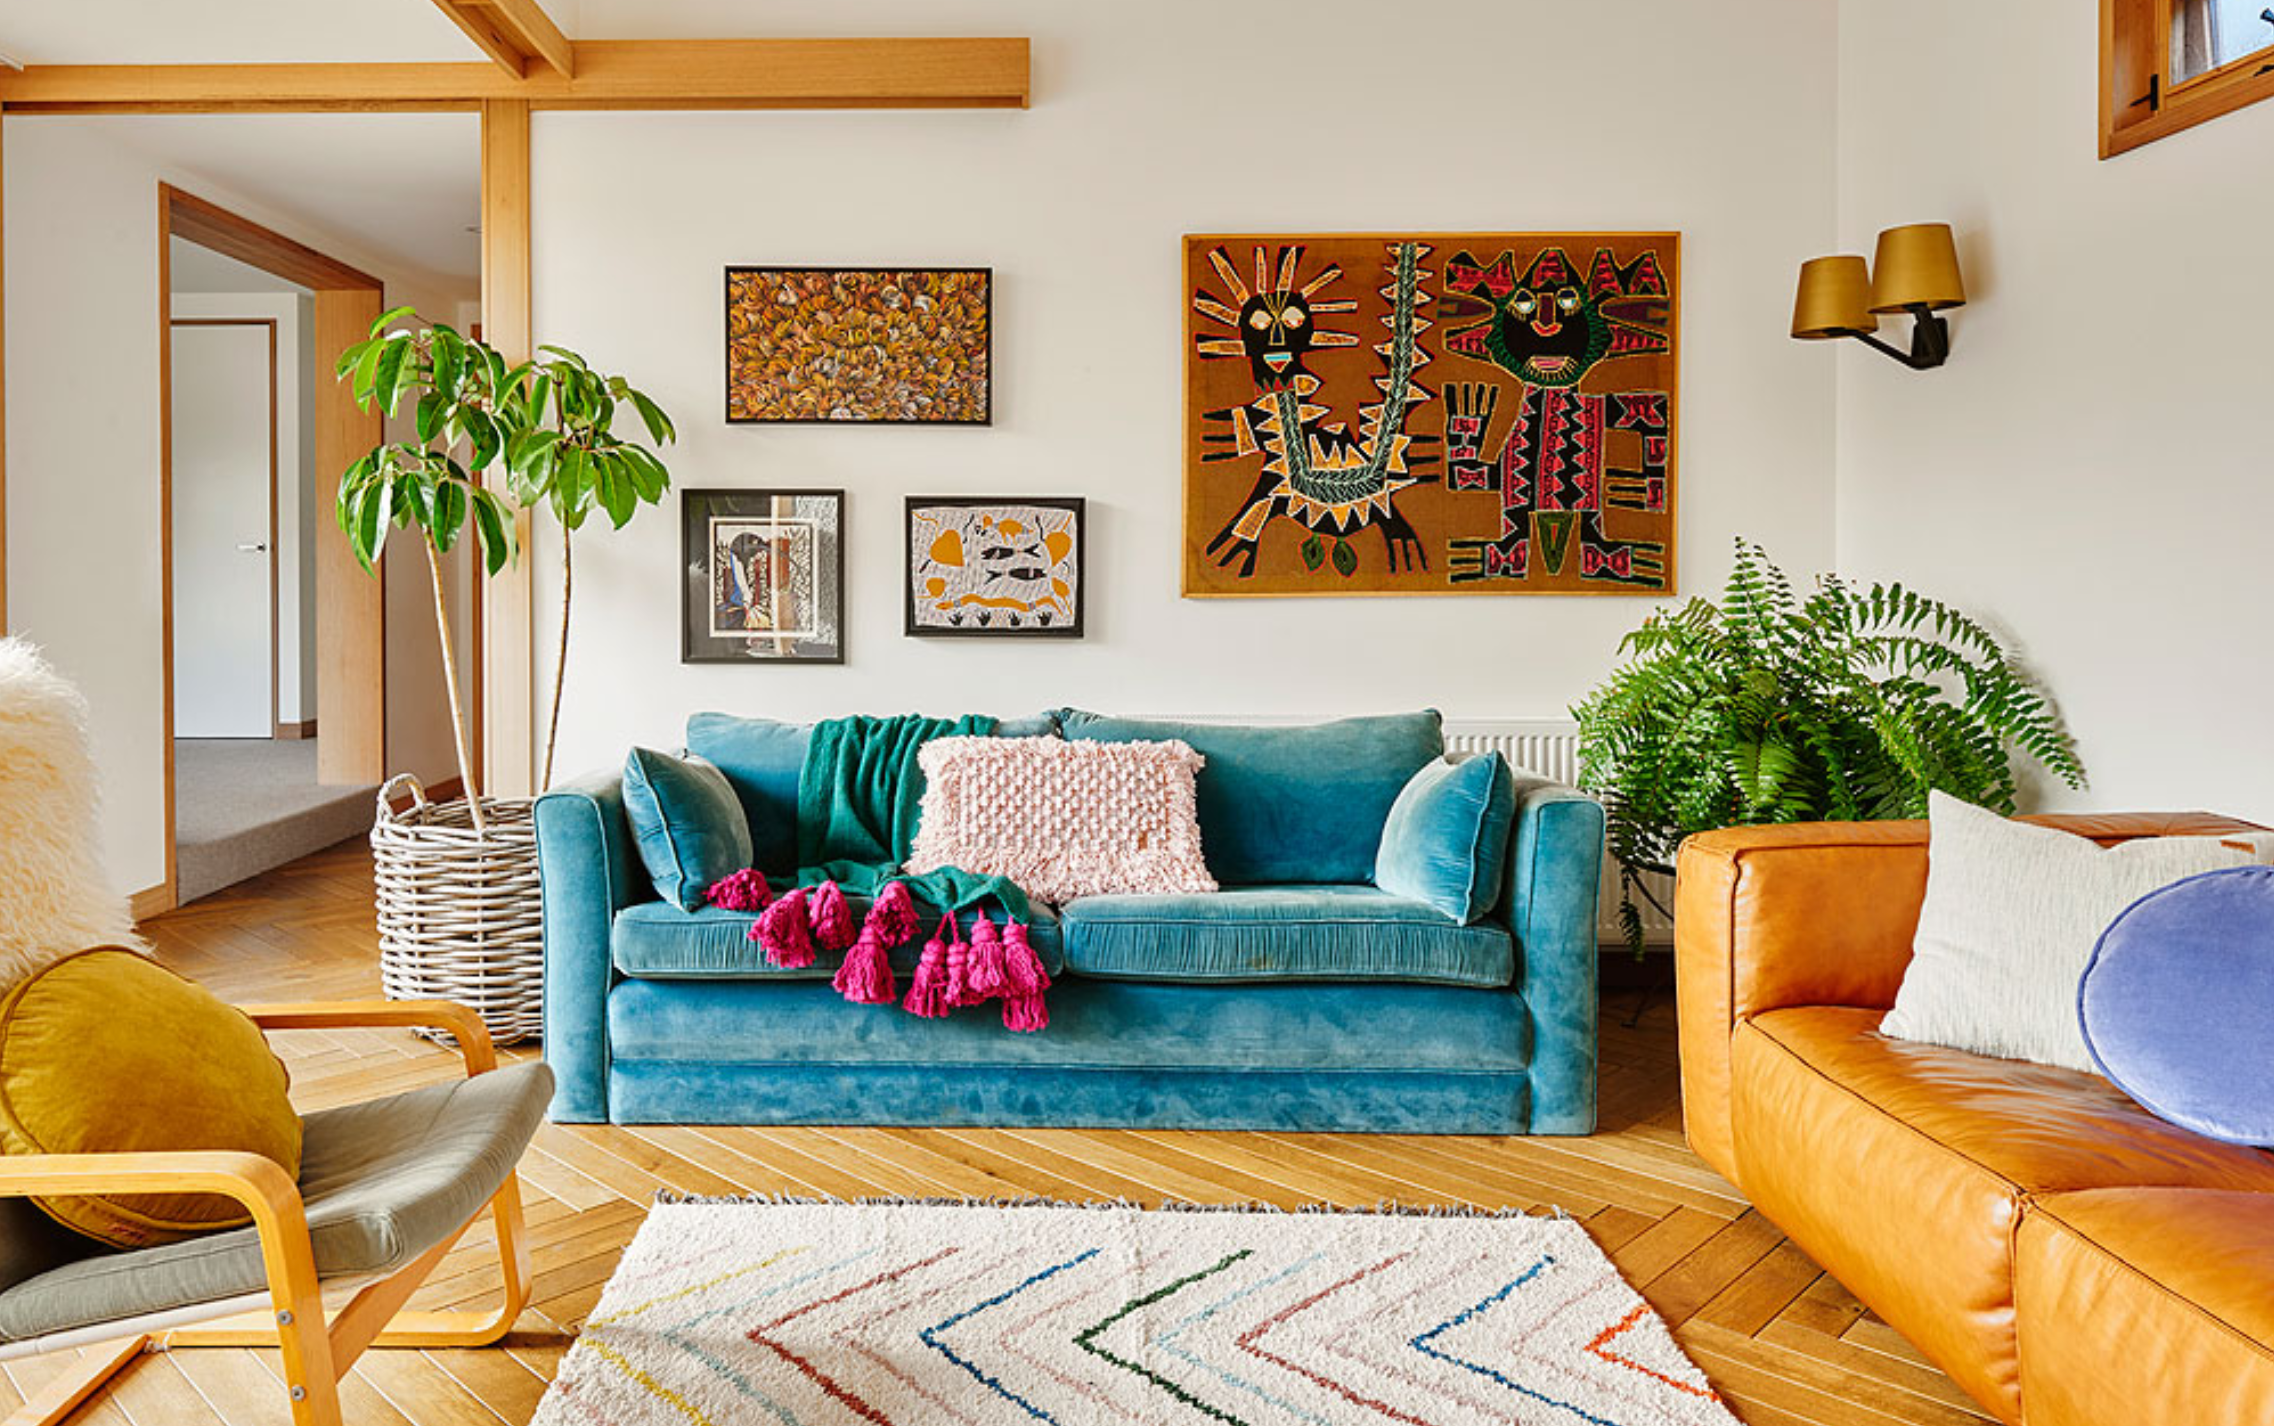 Bohemian-inspired home with turquoise couch and tribal art